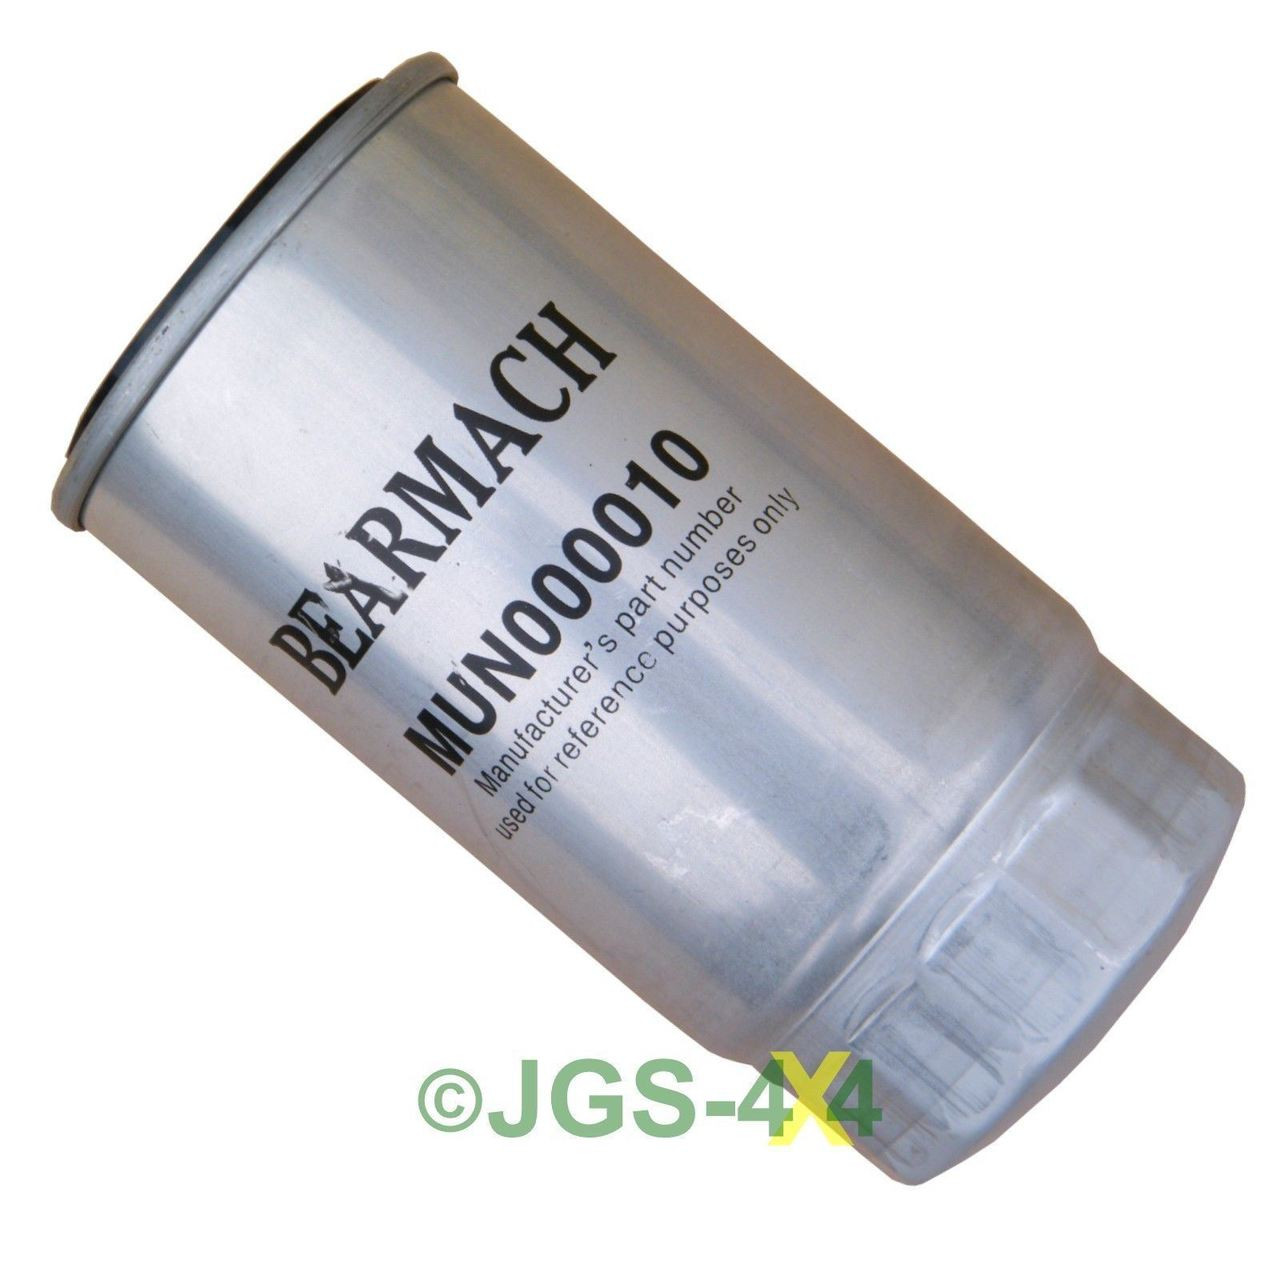 hight resolution of jgs4x4 land rover freelander 1 diesel fuel filter 2 0 td4 bmw engine mun000010